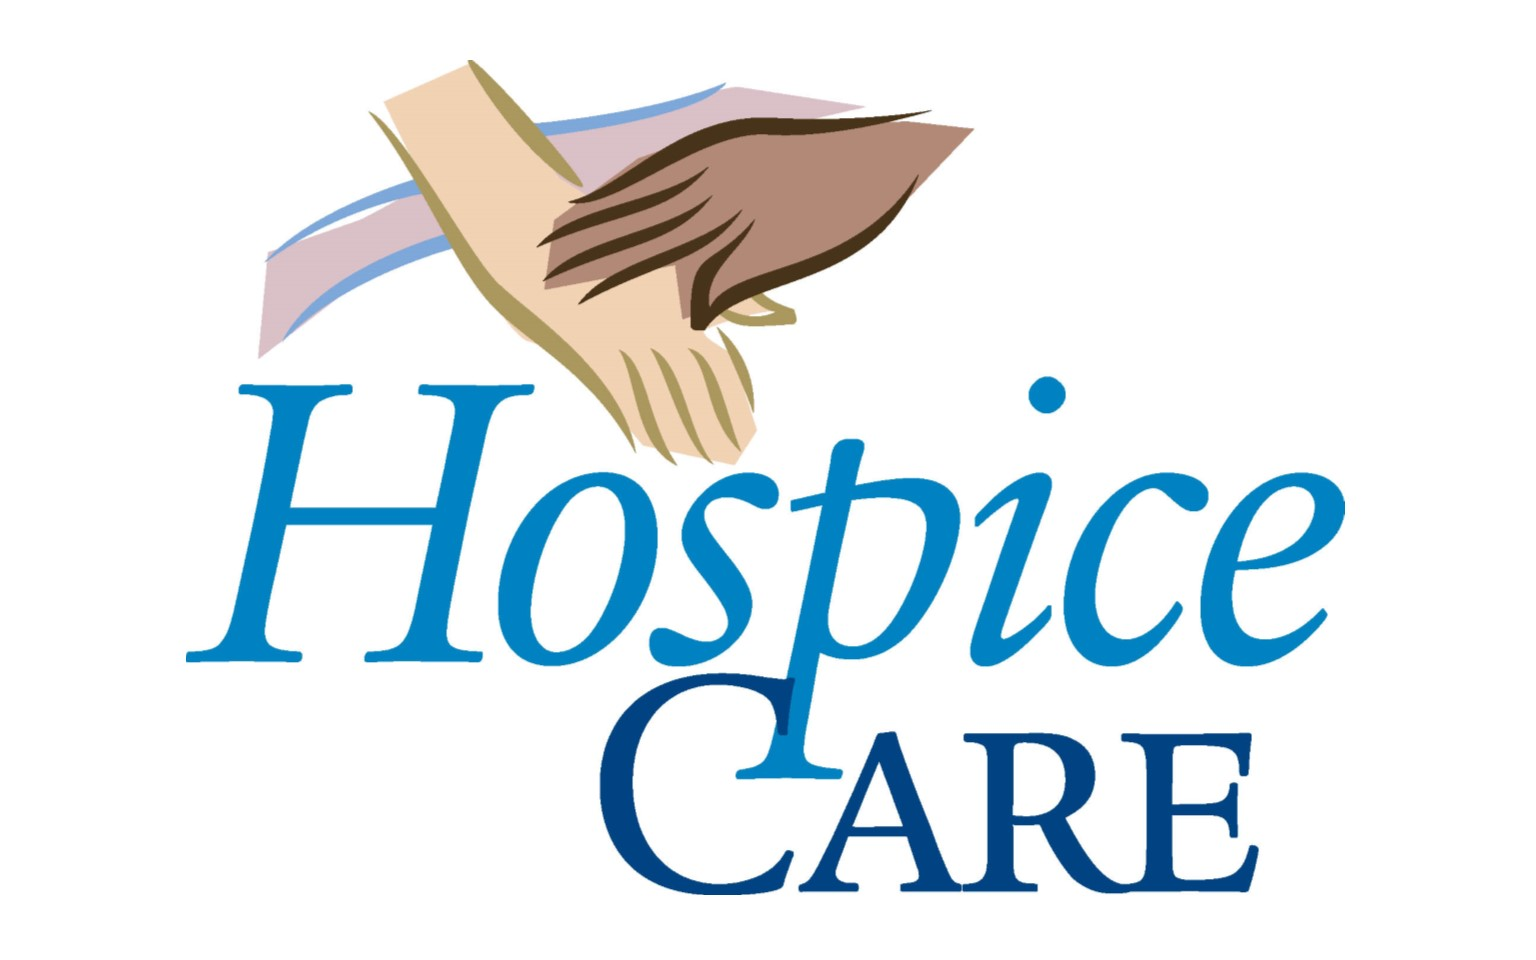 hospice care presentation march 10 tlcms org music staff clip art transparent background music staff clipart png